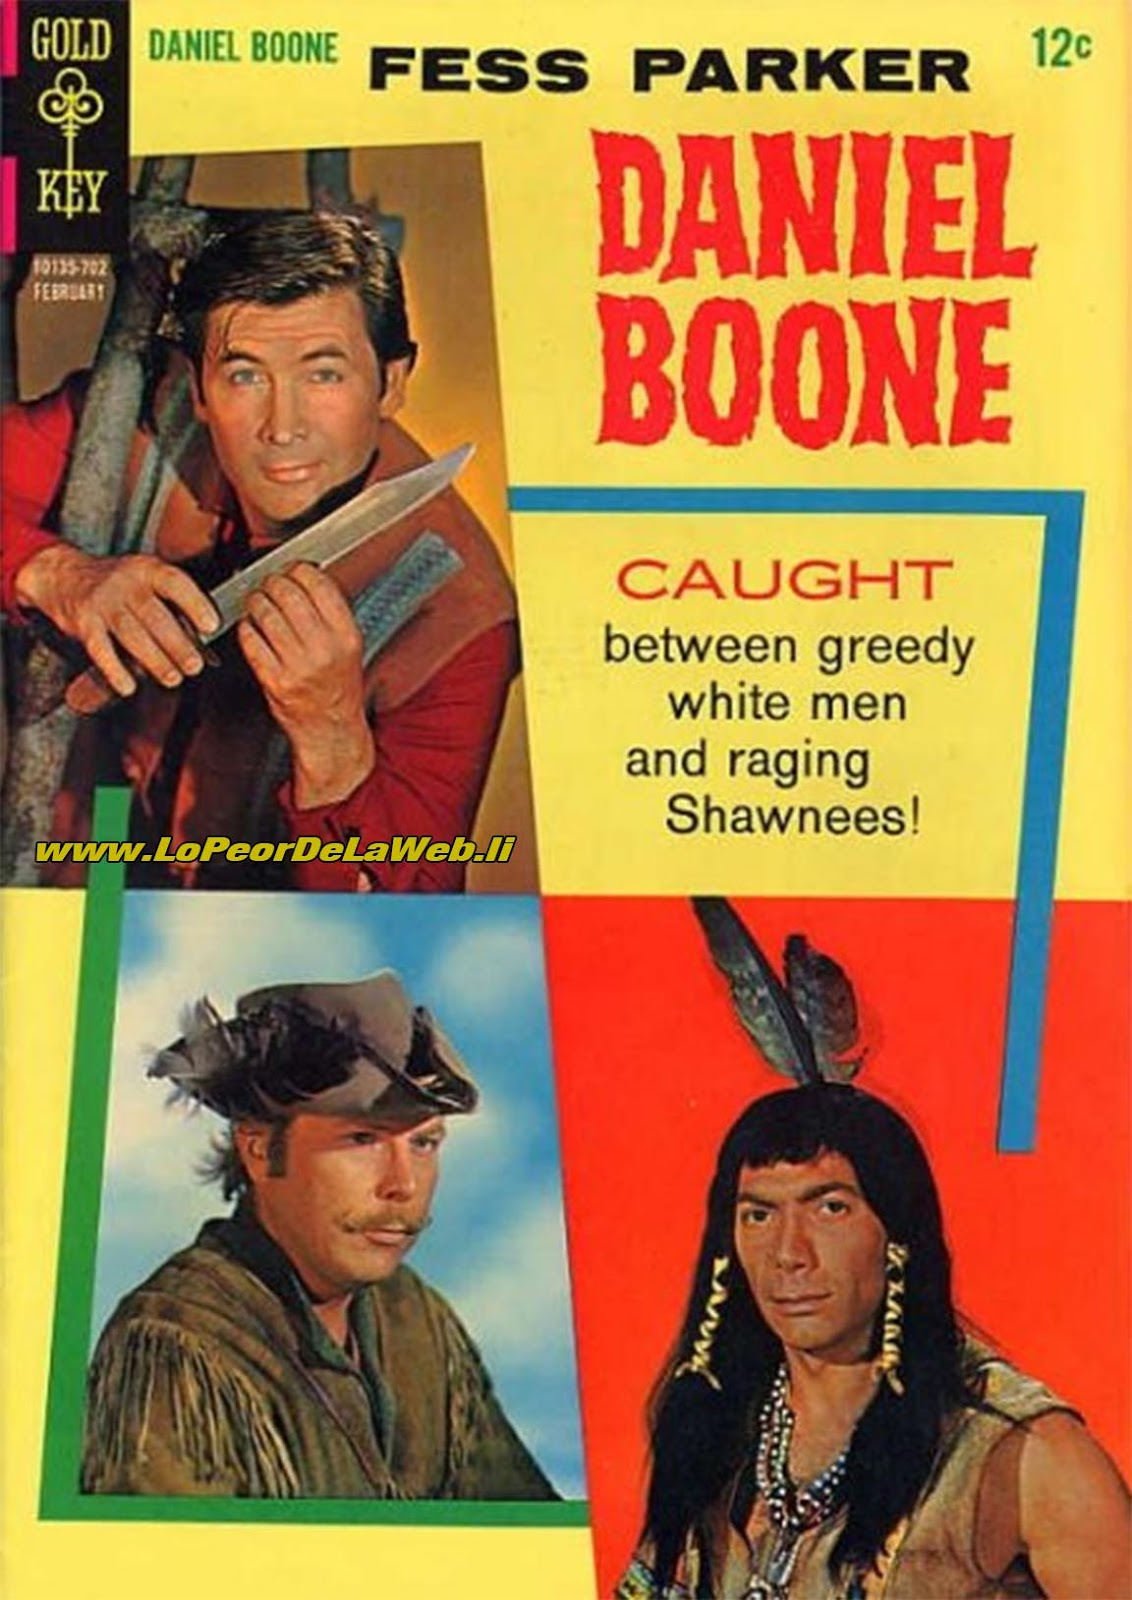 daniel boone episode 10 points Watch daniel boone - season 3, episode 10 - the enchanted gun: after giving  his rifle to a shawnee warrior, daniel must prove that the weapon is not.